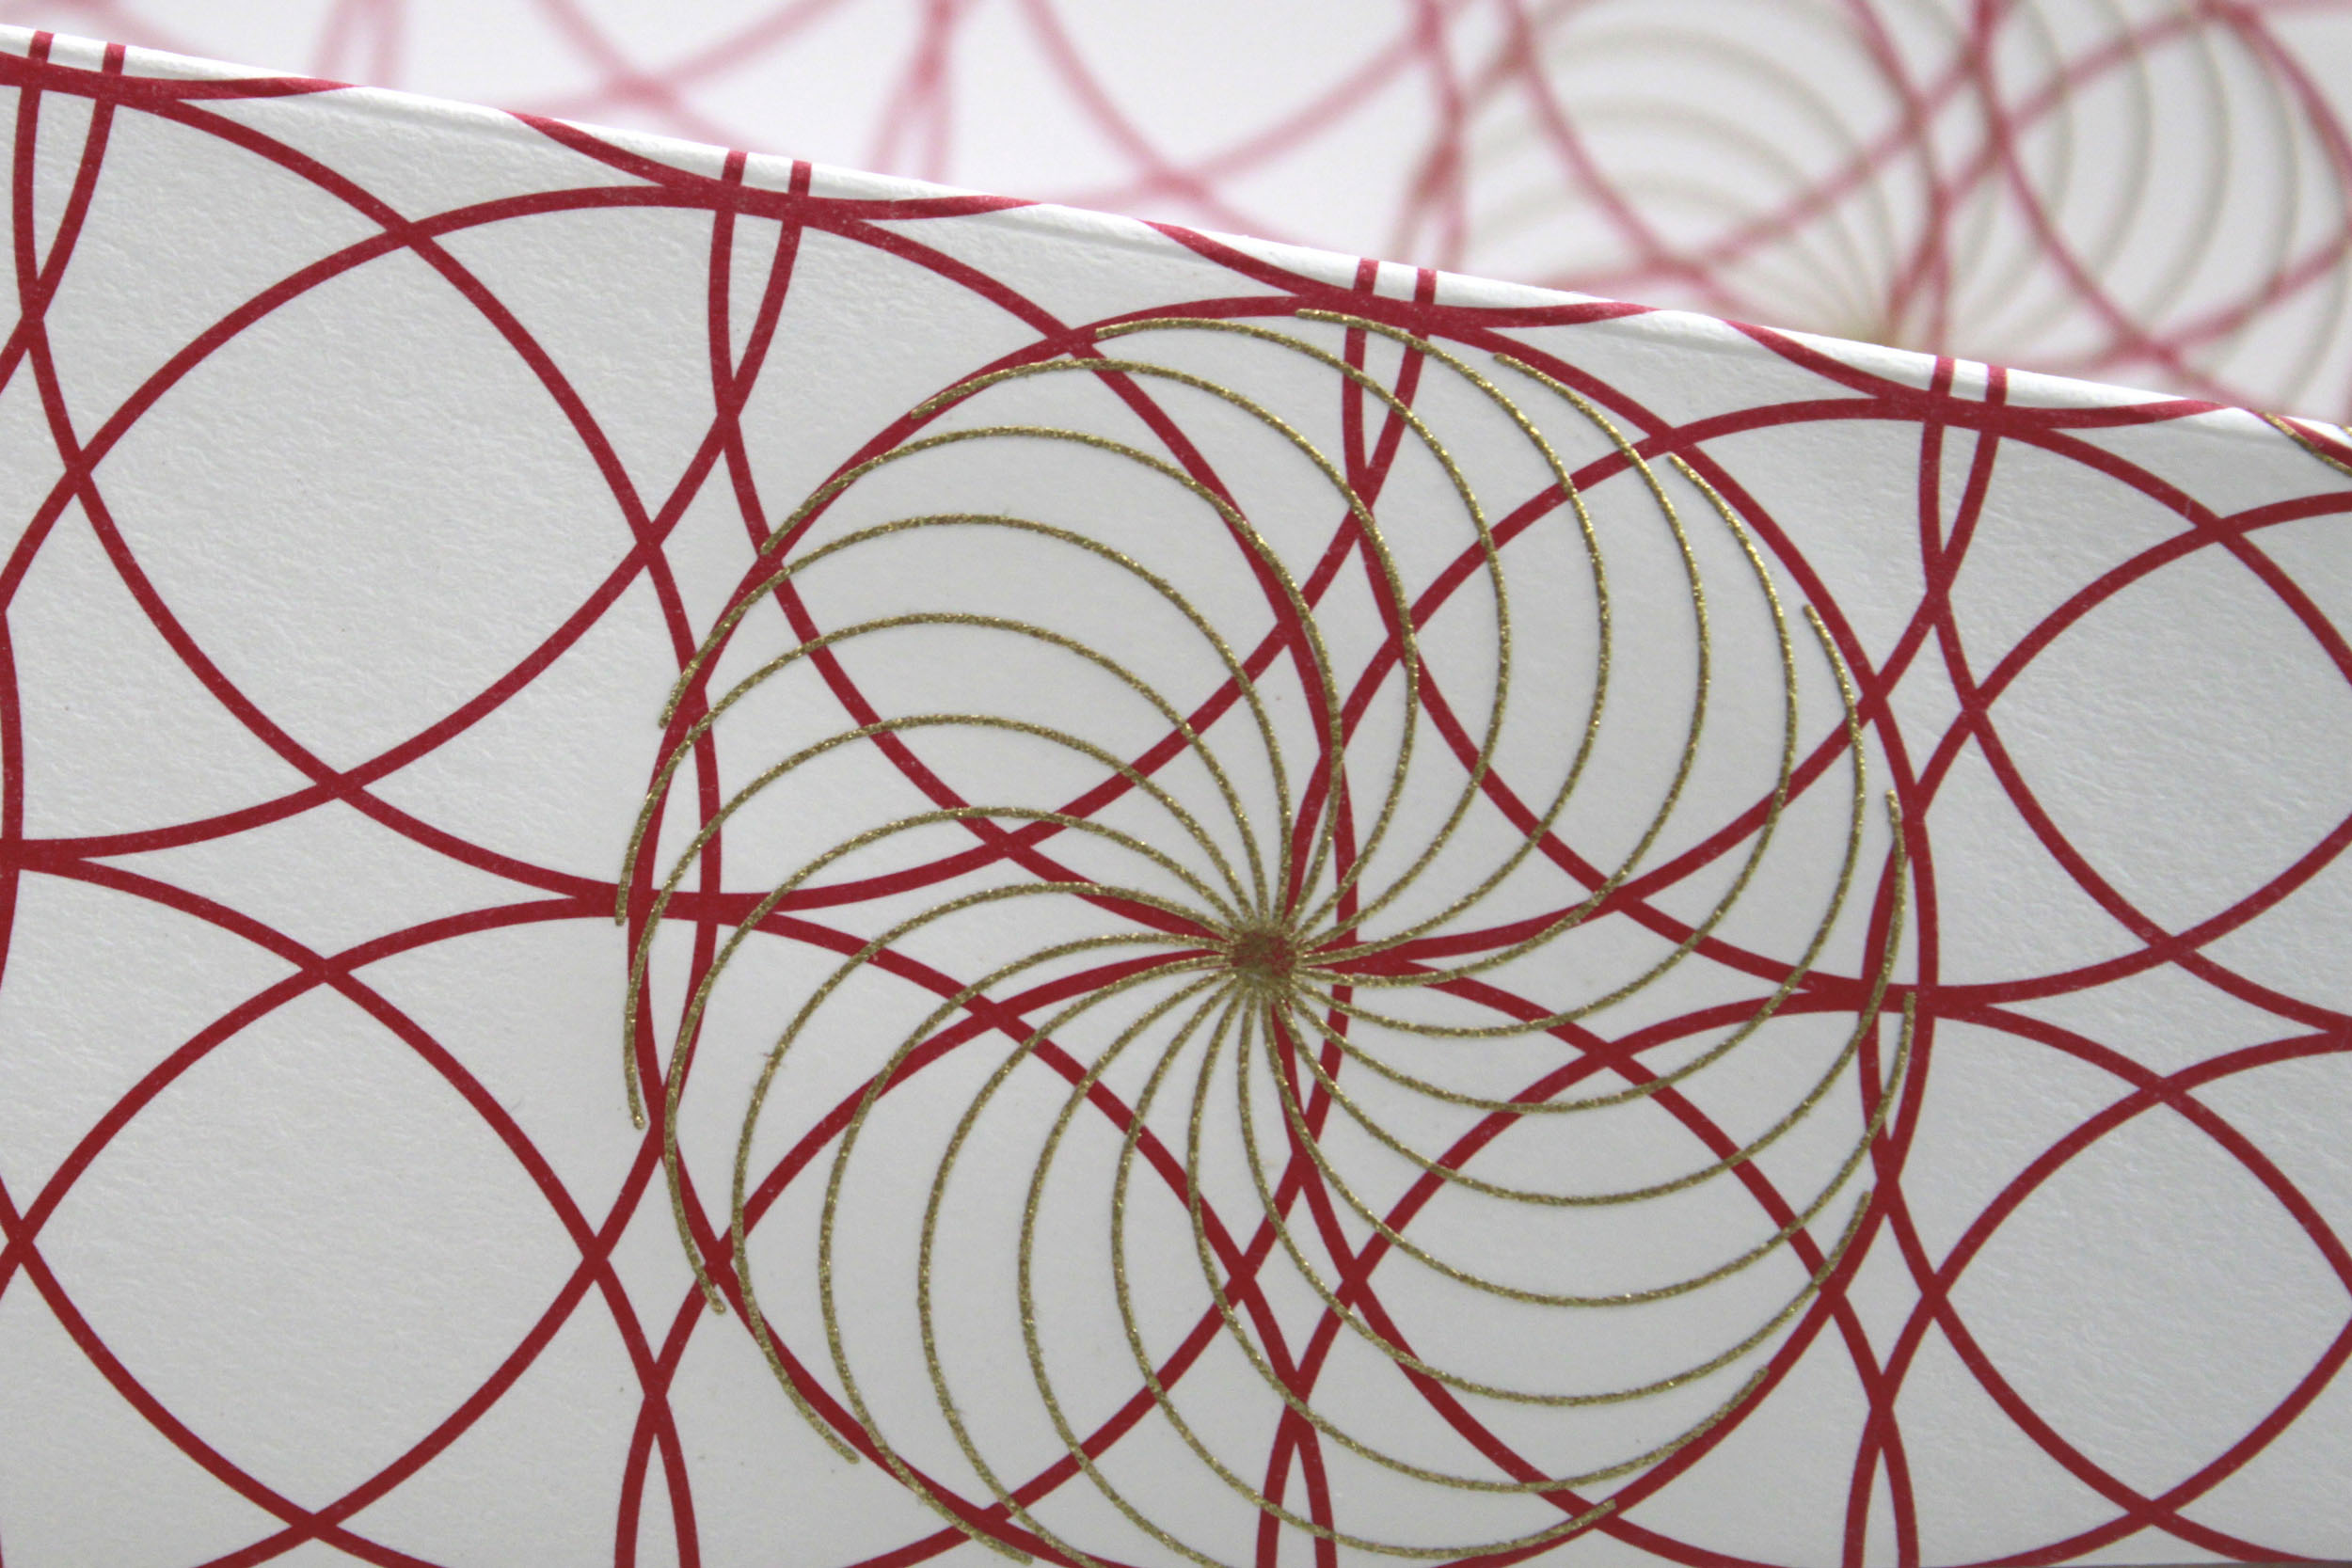 A detail of a Paper Plane showing circle design